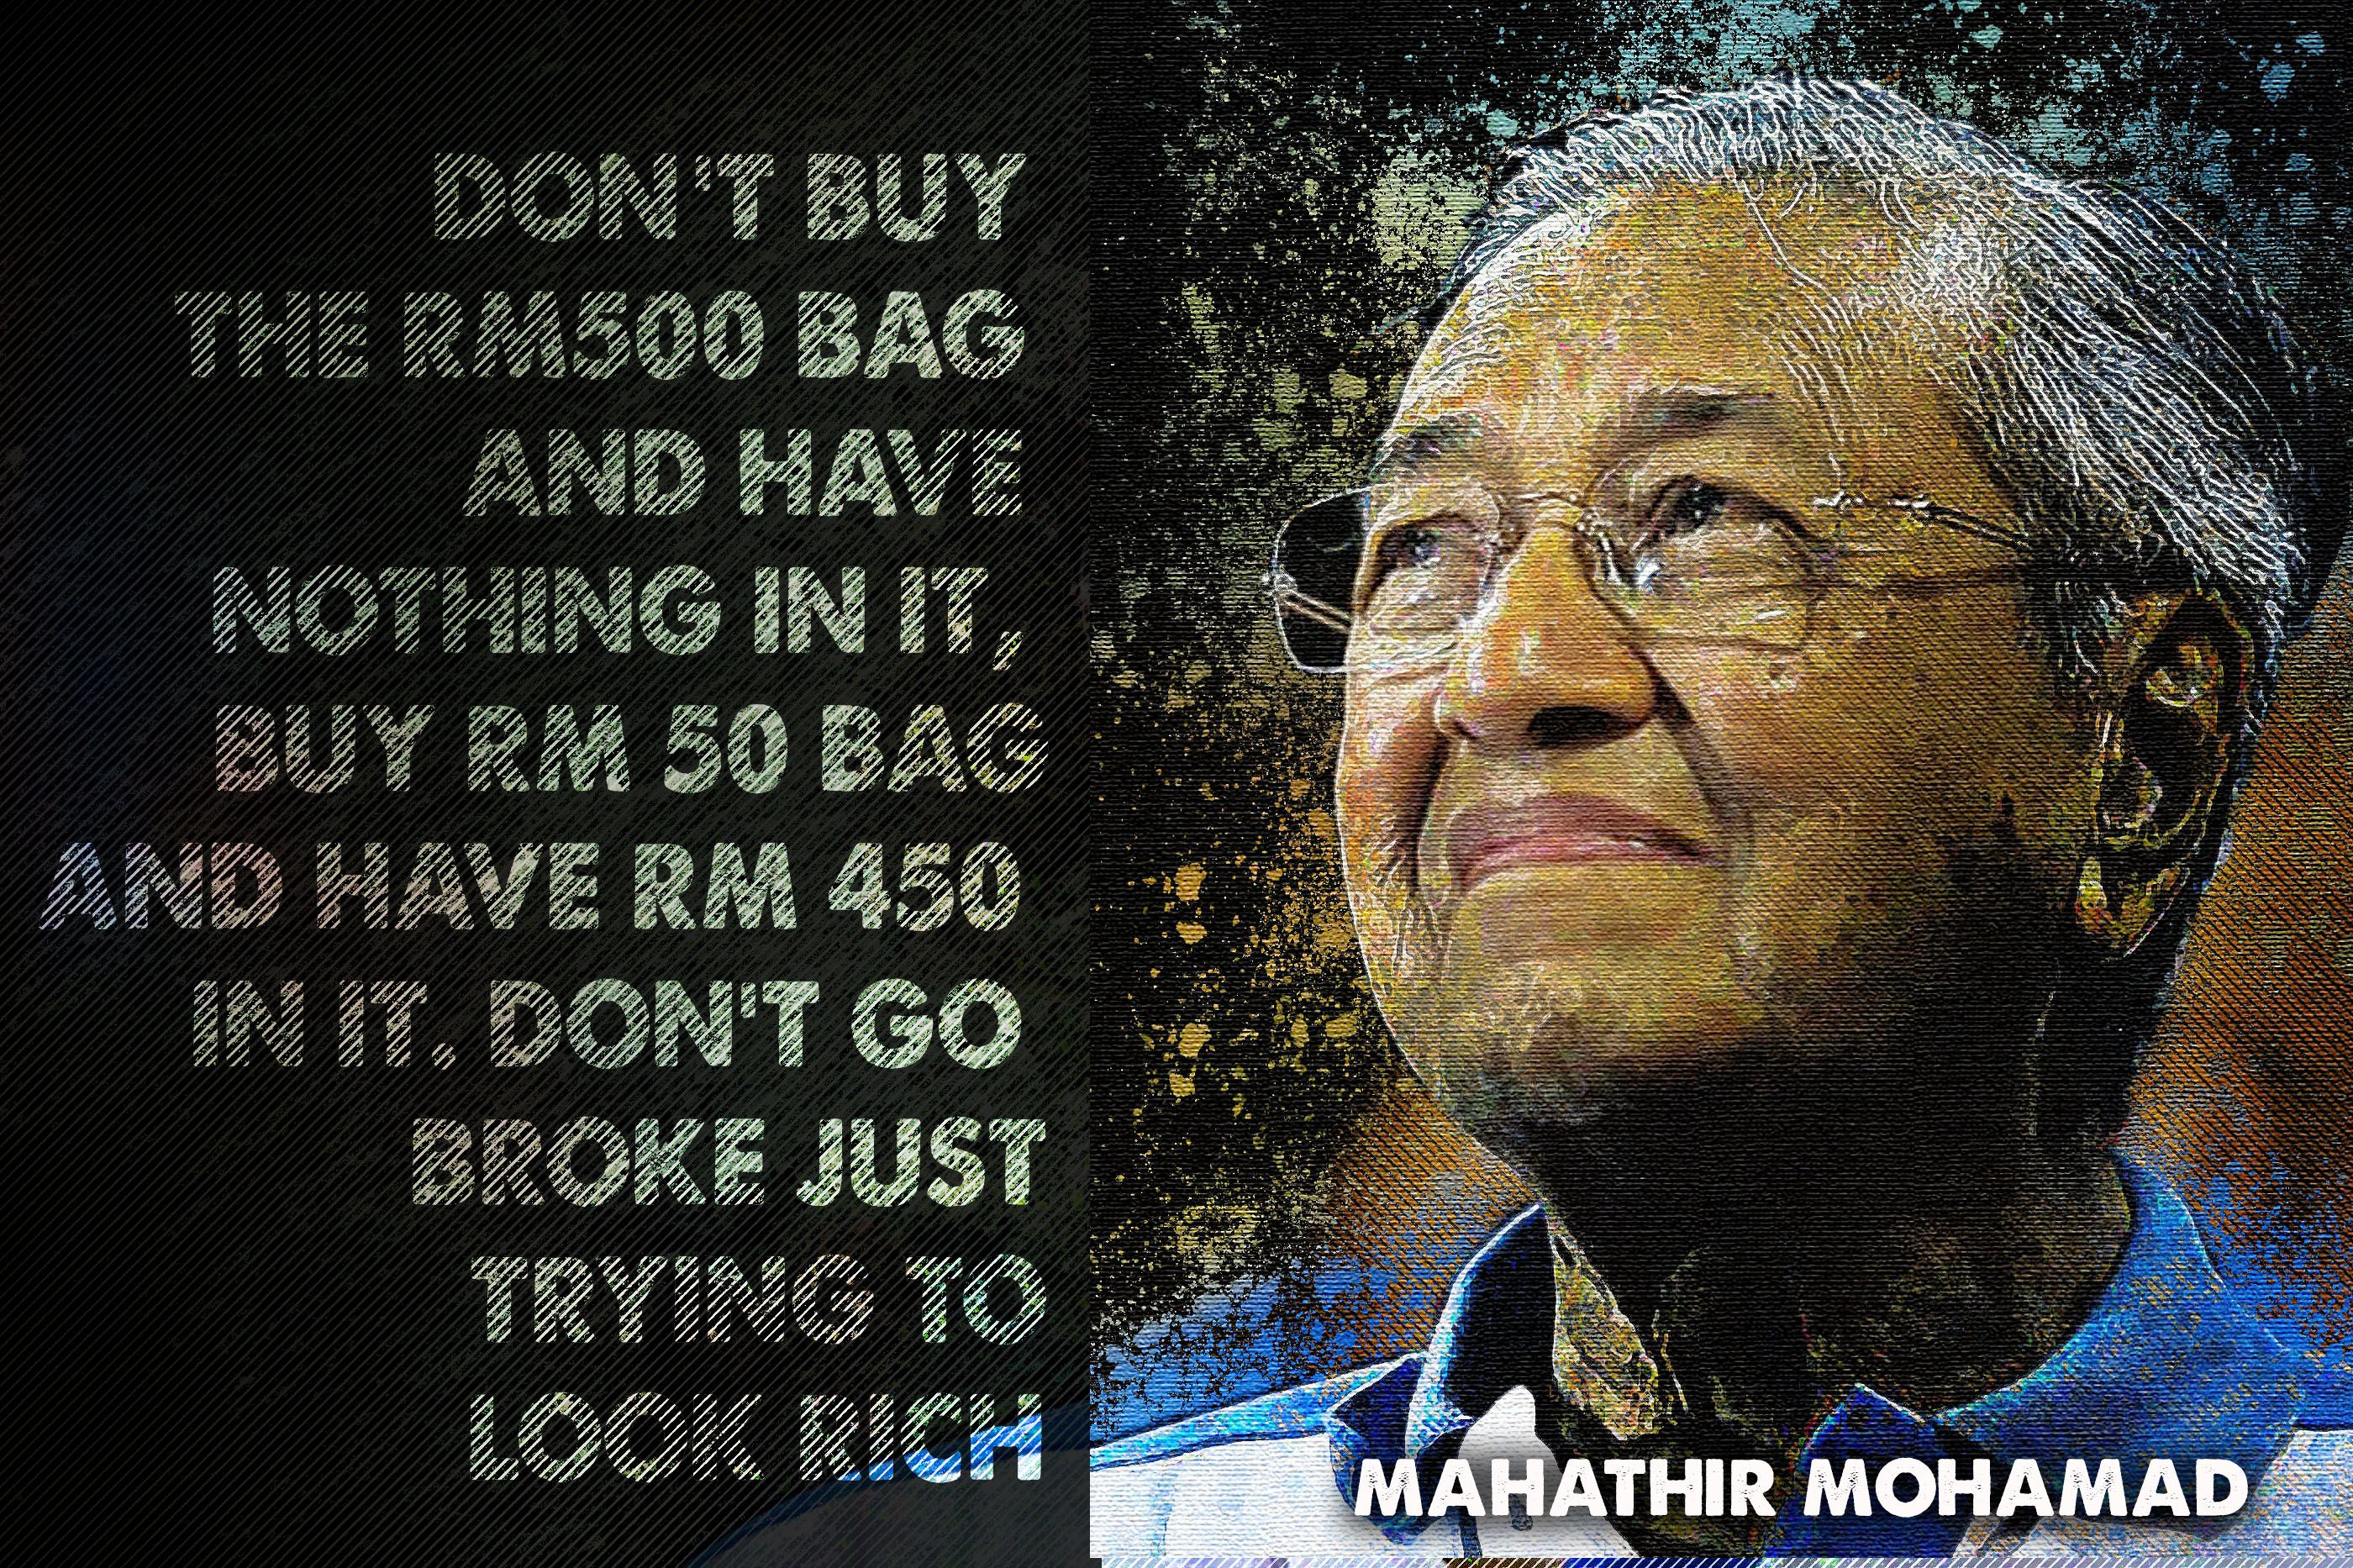 Tun Dr Mahathir Mohamad Worthy Quotes Mahathir Mohamad Words